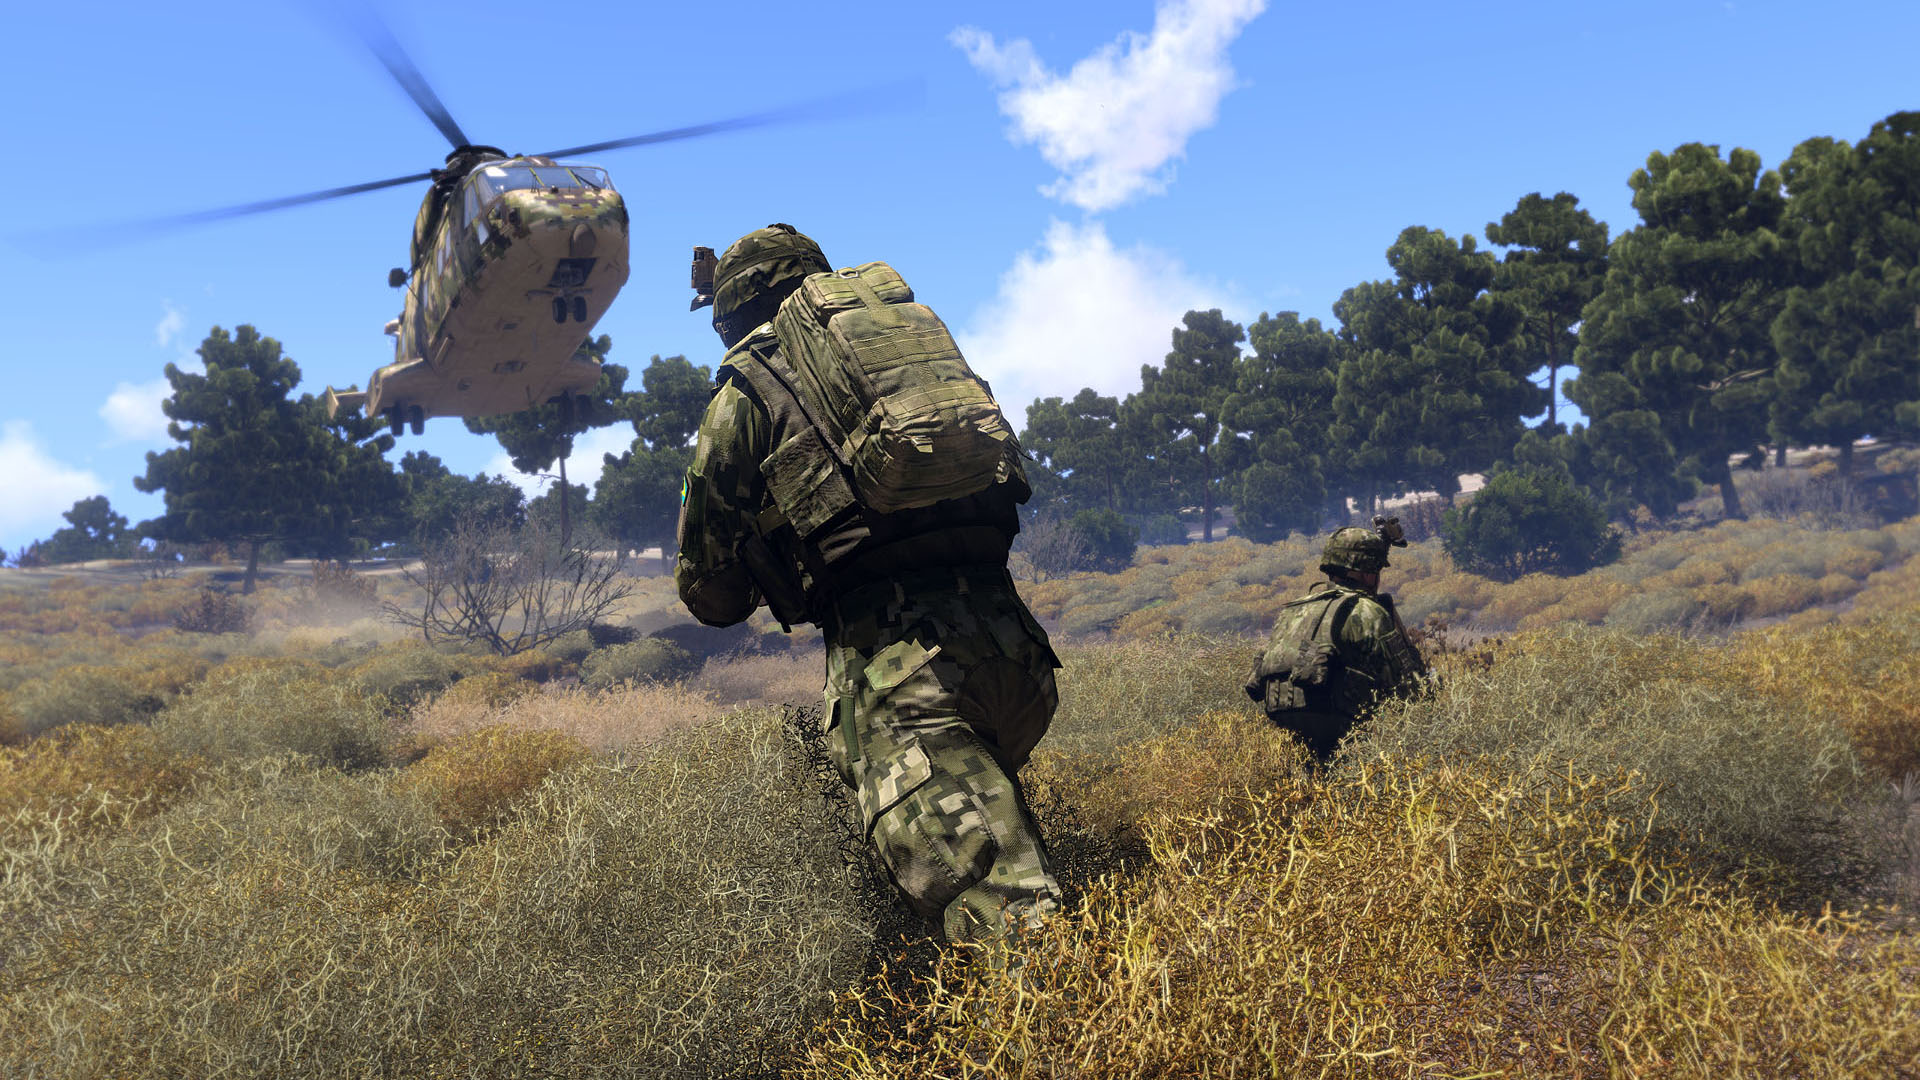 Arma 3 on Steam